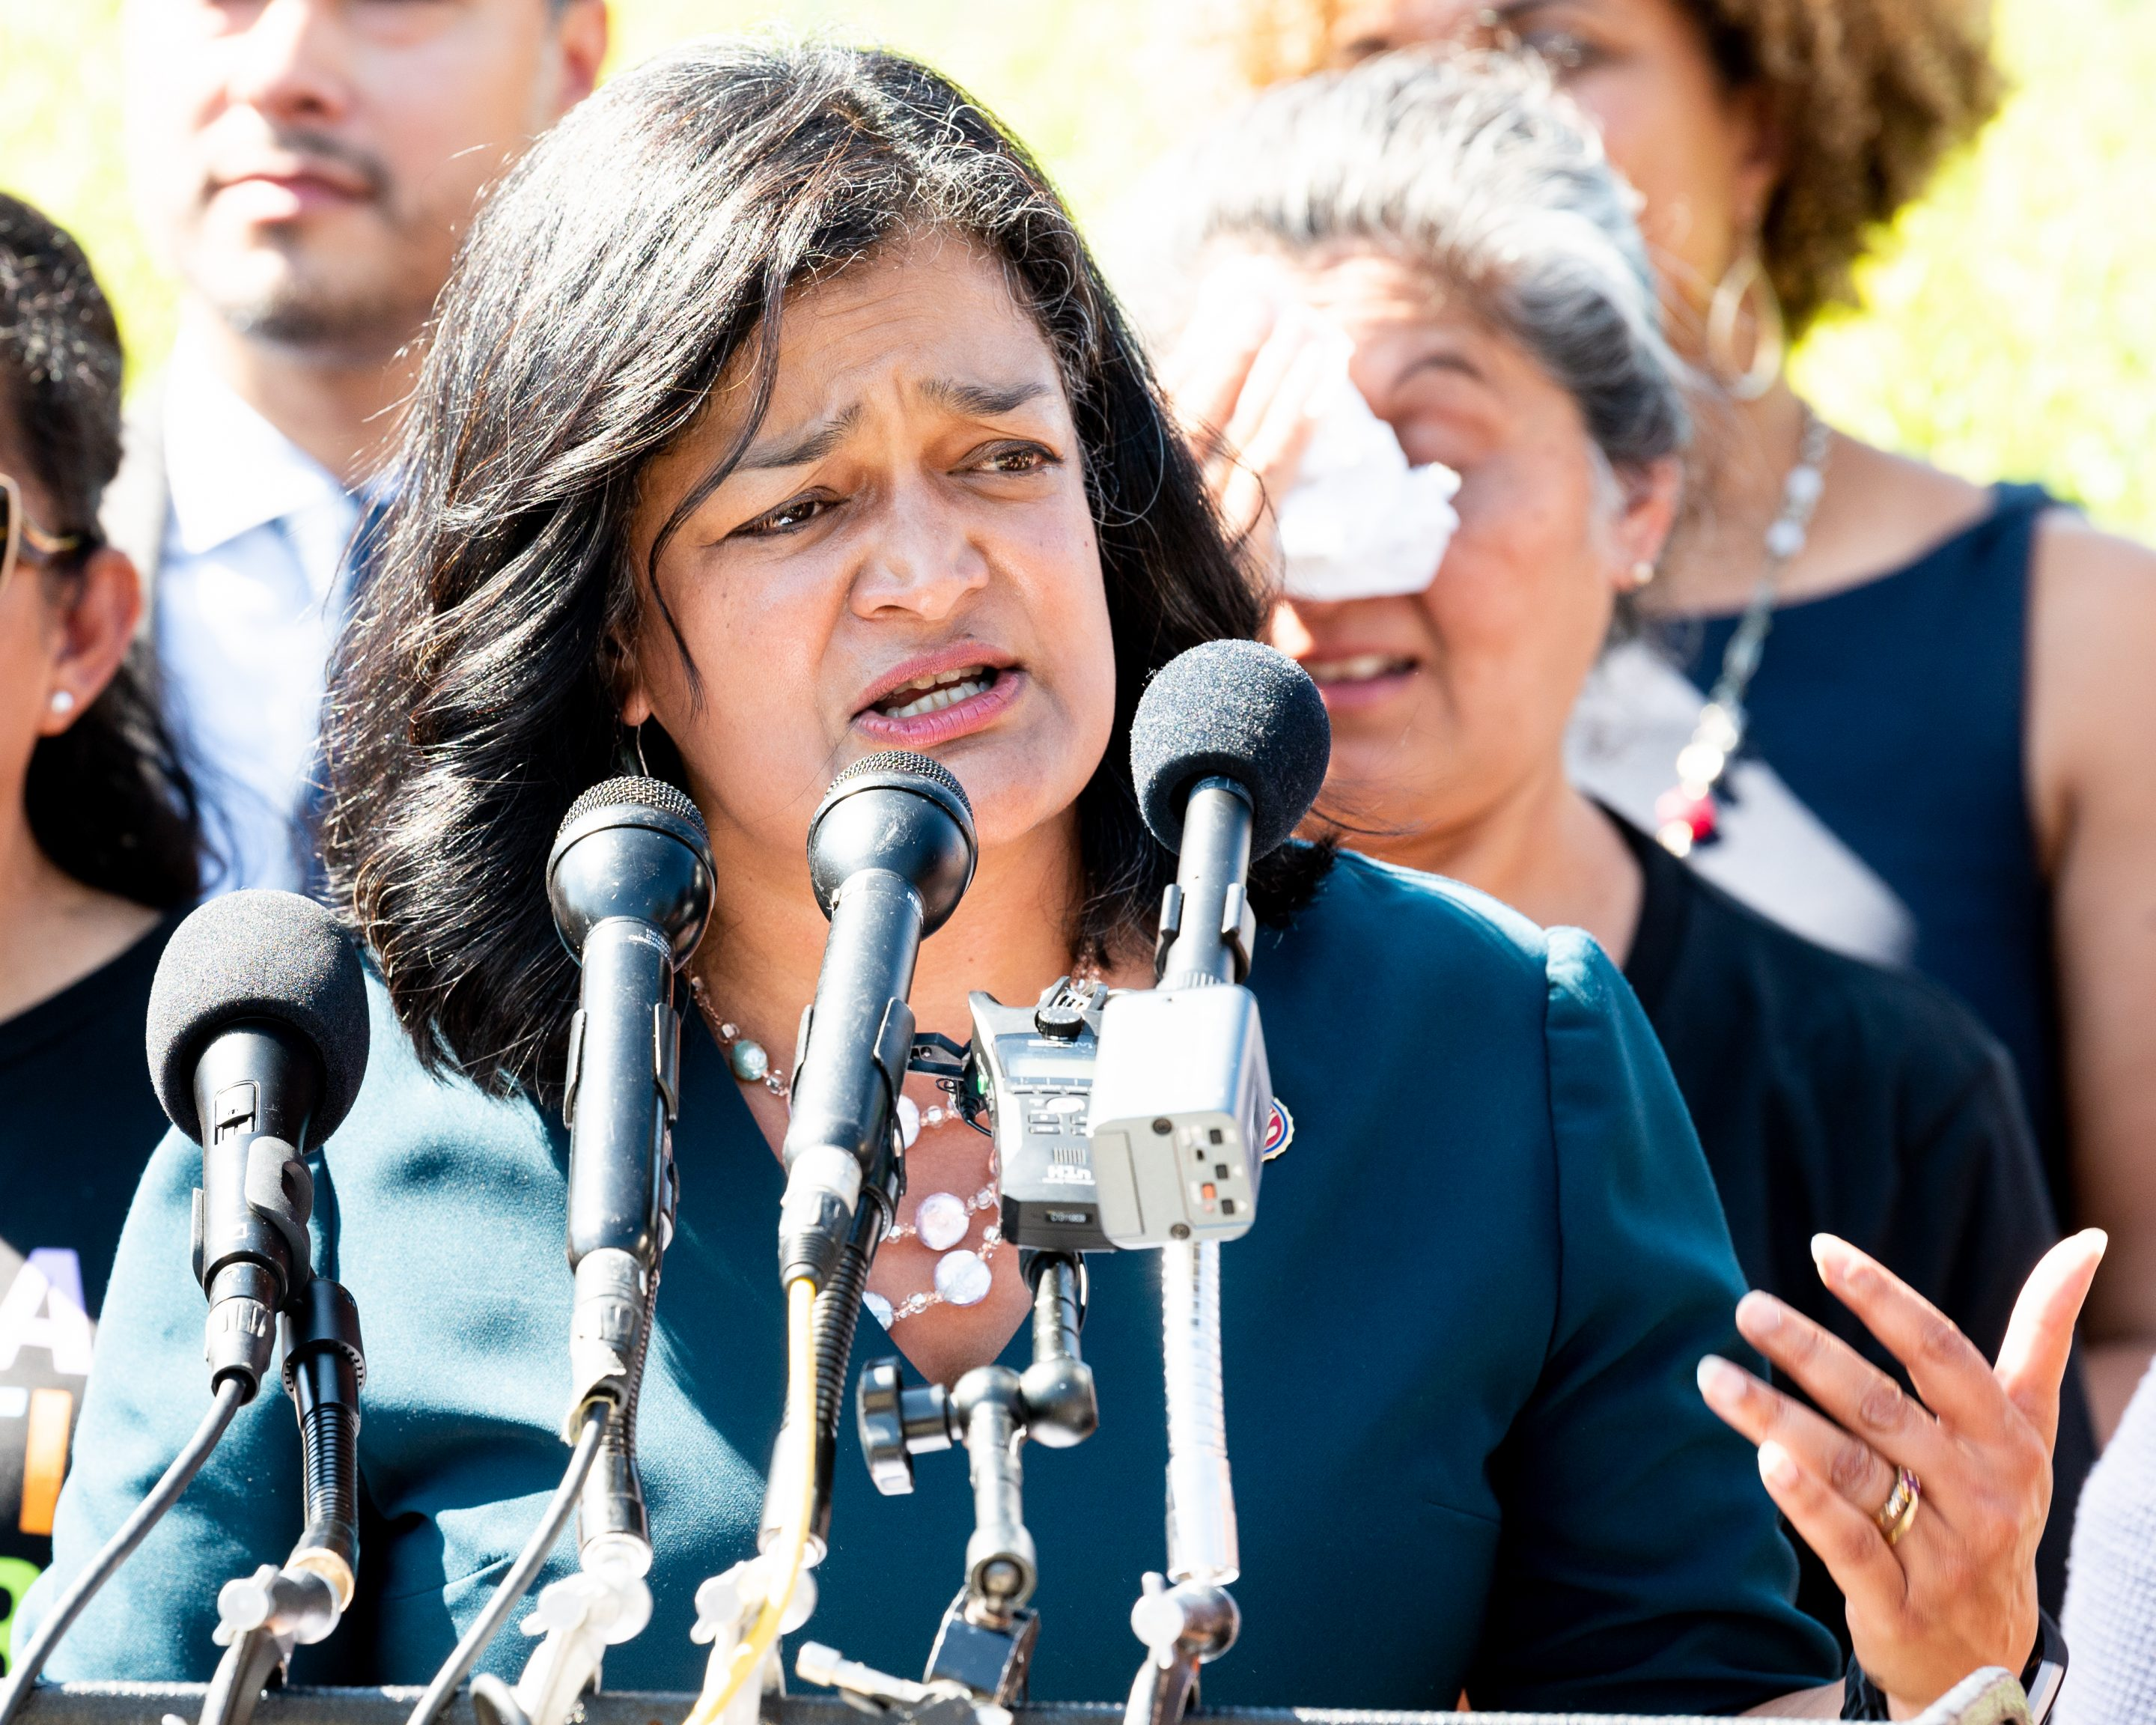 U.S. Representative Pramila Jayapal speaking about the National Domestic Workers Bill of Rights at the Capitol. The bill, which Jayapal introduced jointly with Sen. Kamala Harris, would create a forum to ensure better standards for the industry.